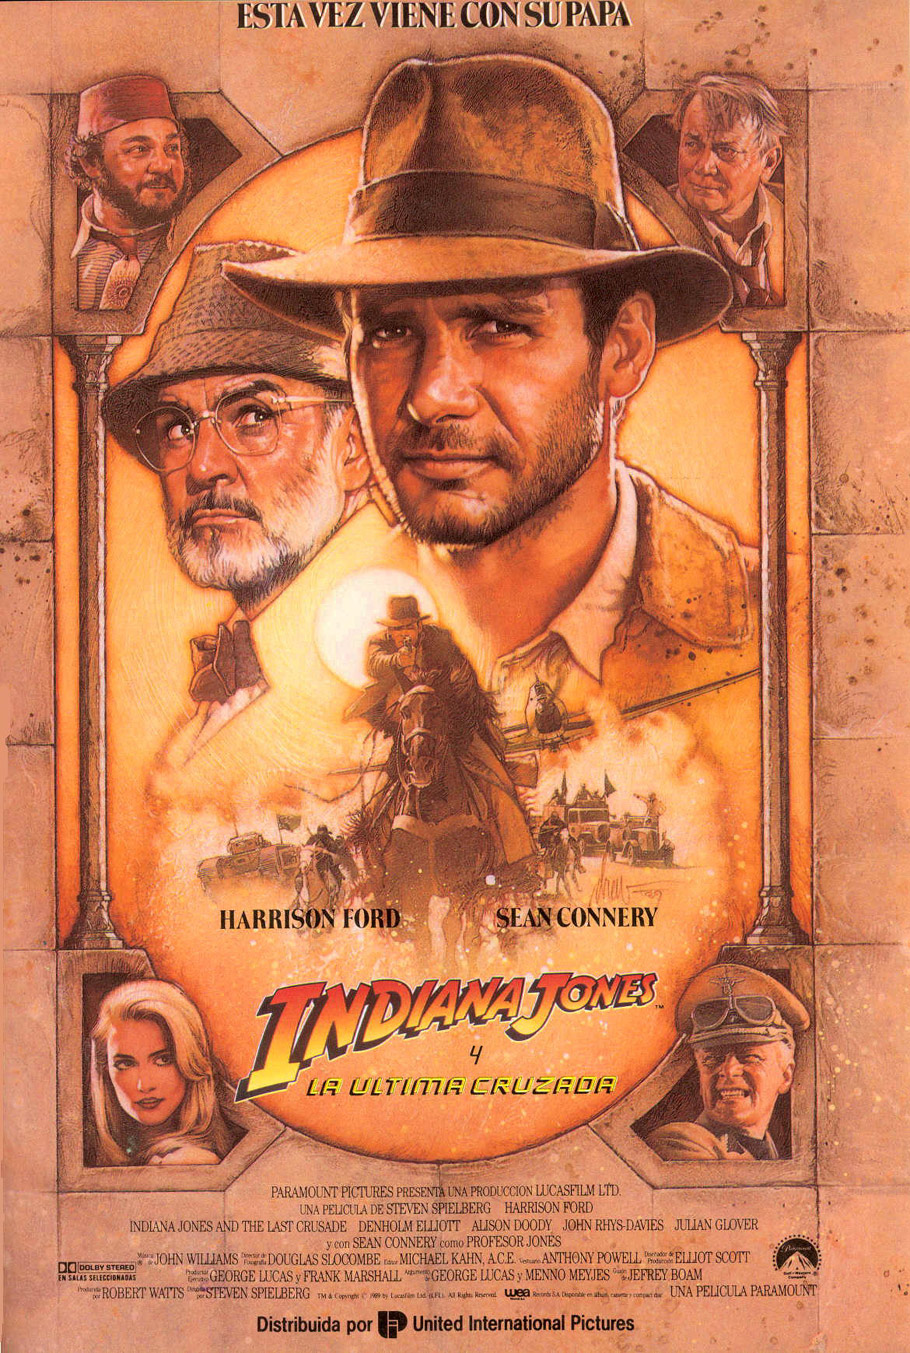 cartel de la pelicula indiana jones y la ultima cruzada 1989